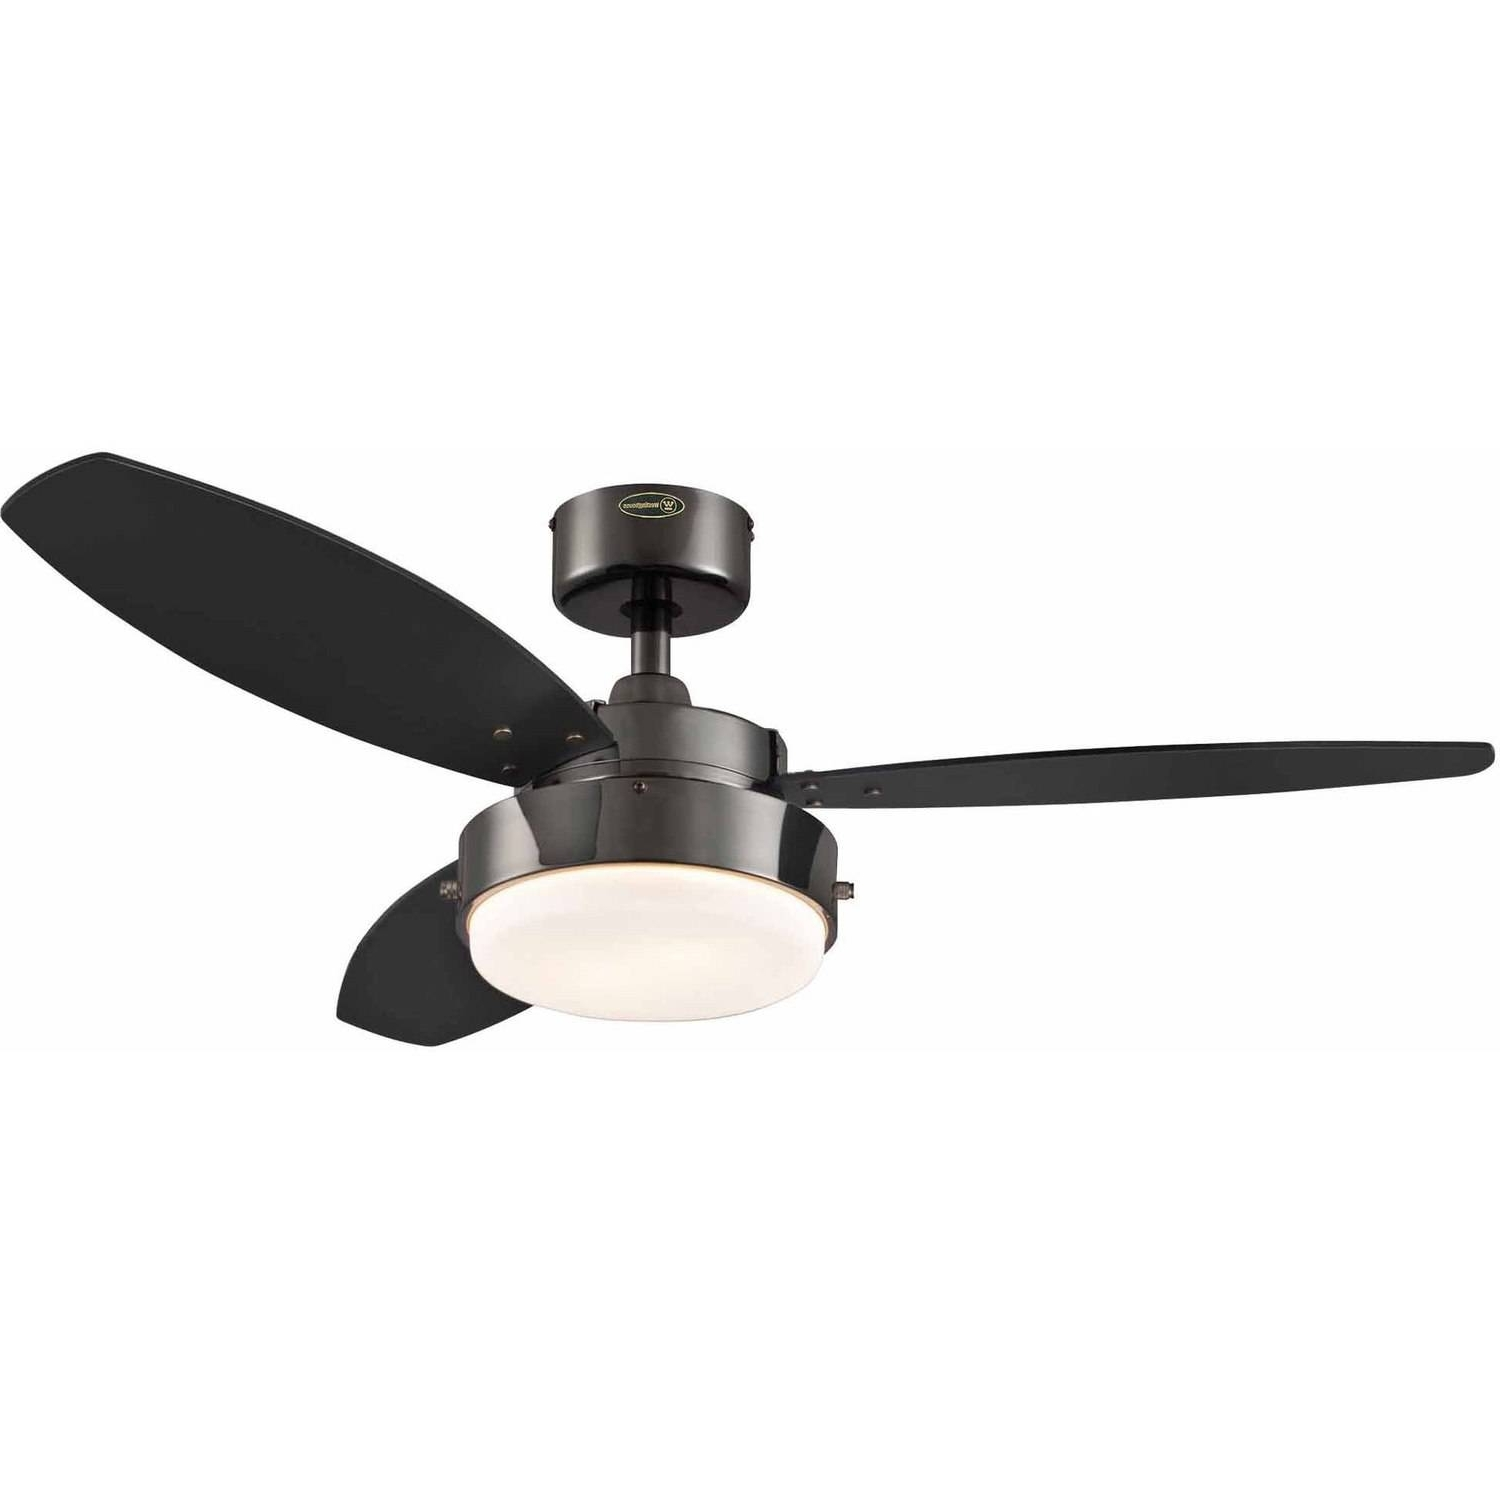 "Outdoor Ceiling Fans With Metal Blades Regarding Latest Westinghouse 7876400 42"" Gun Metal 3 Blade Reversible Ceiling Fan (View 11 of 20)"